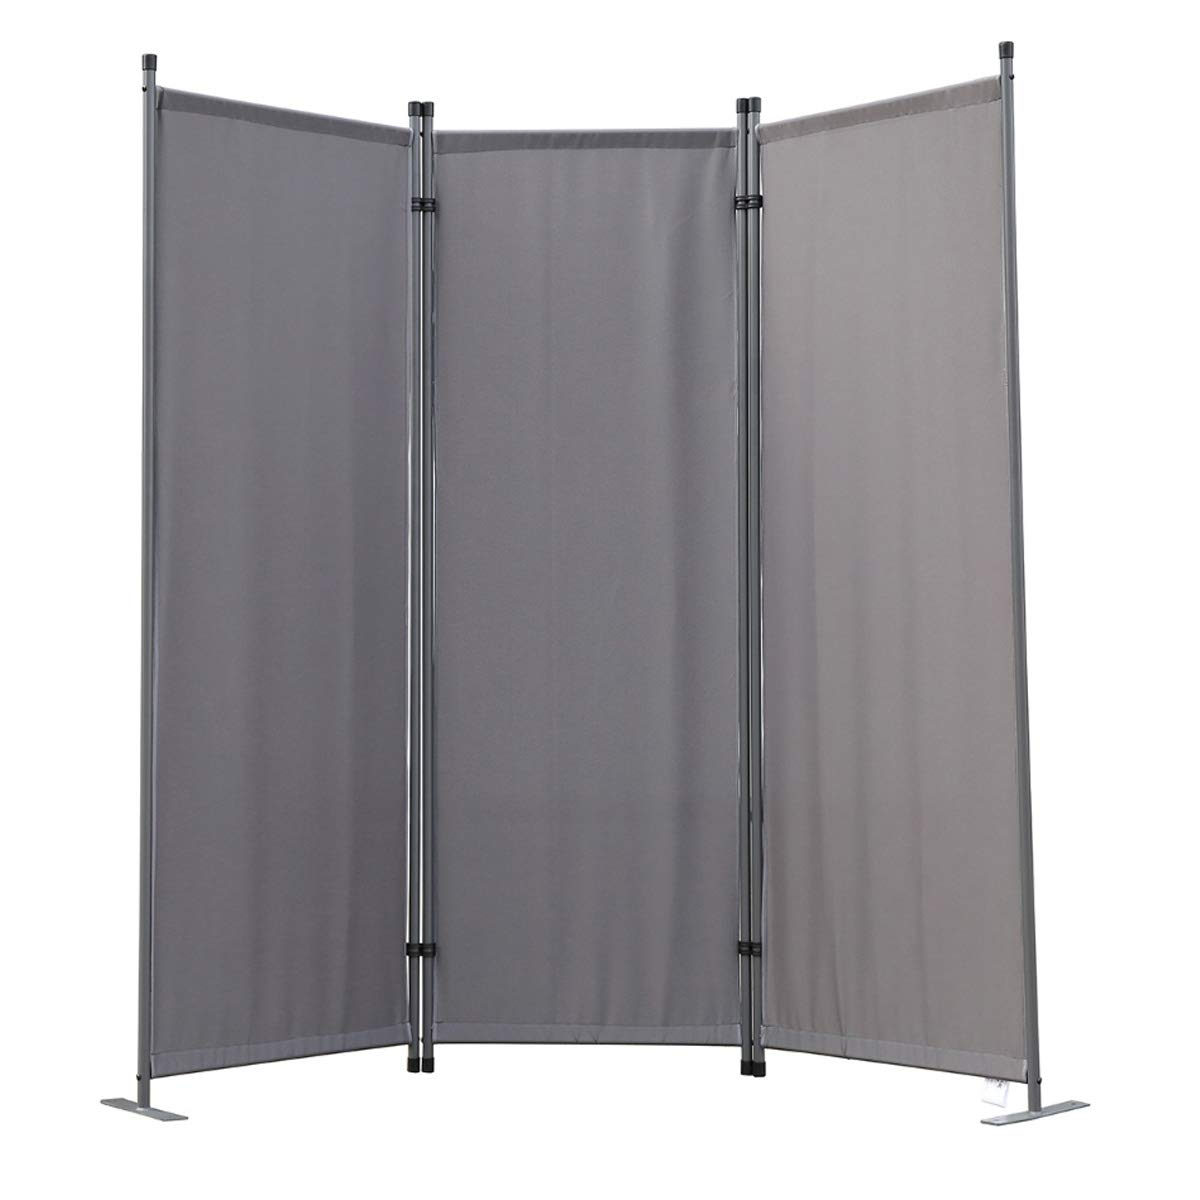 Angel Living Protective Screens Room Divider Screen Panel Folding Room Partition Wall Furniture Outdoor Screens for Patio Privacy (3-piece 169x165cm, Grey)